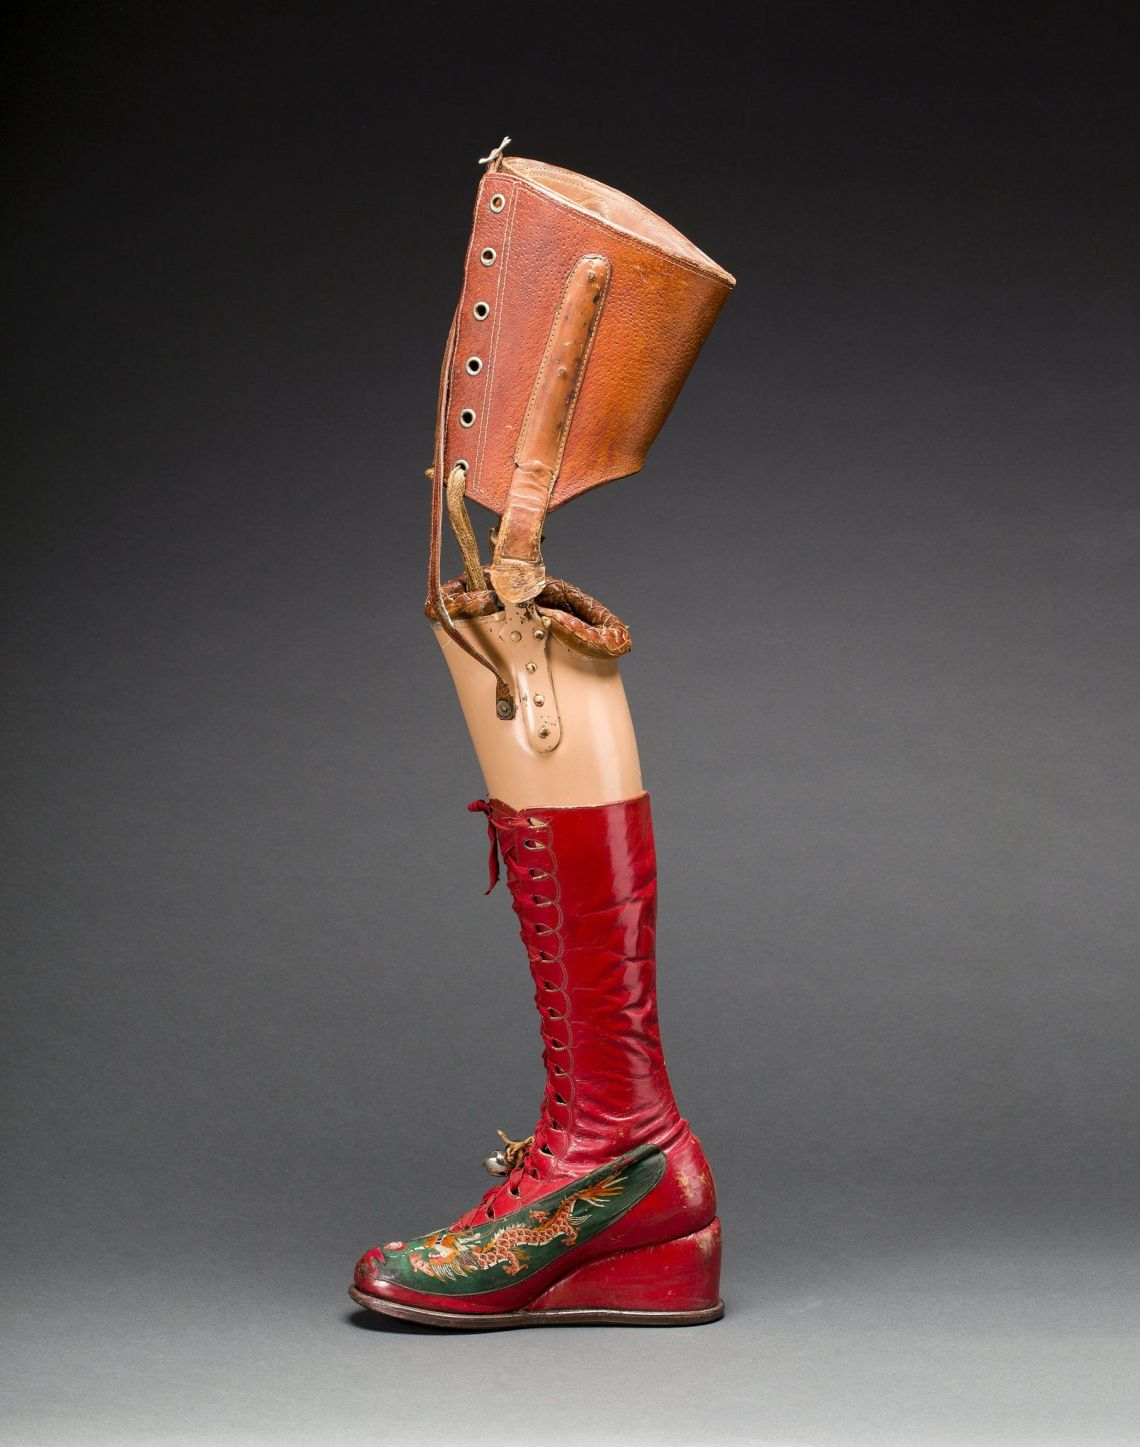 Prosthetic leg with leather boot. Appliquéd silk with embroidered Chinese motifs.